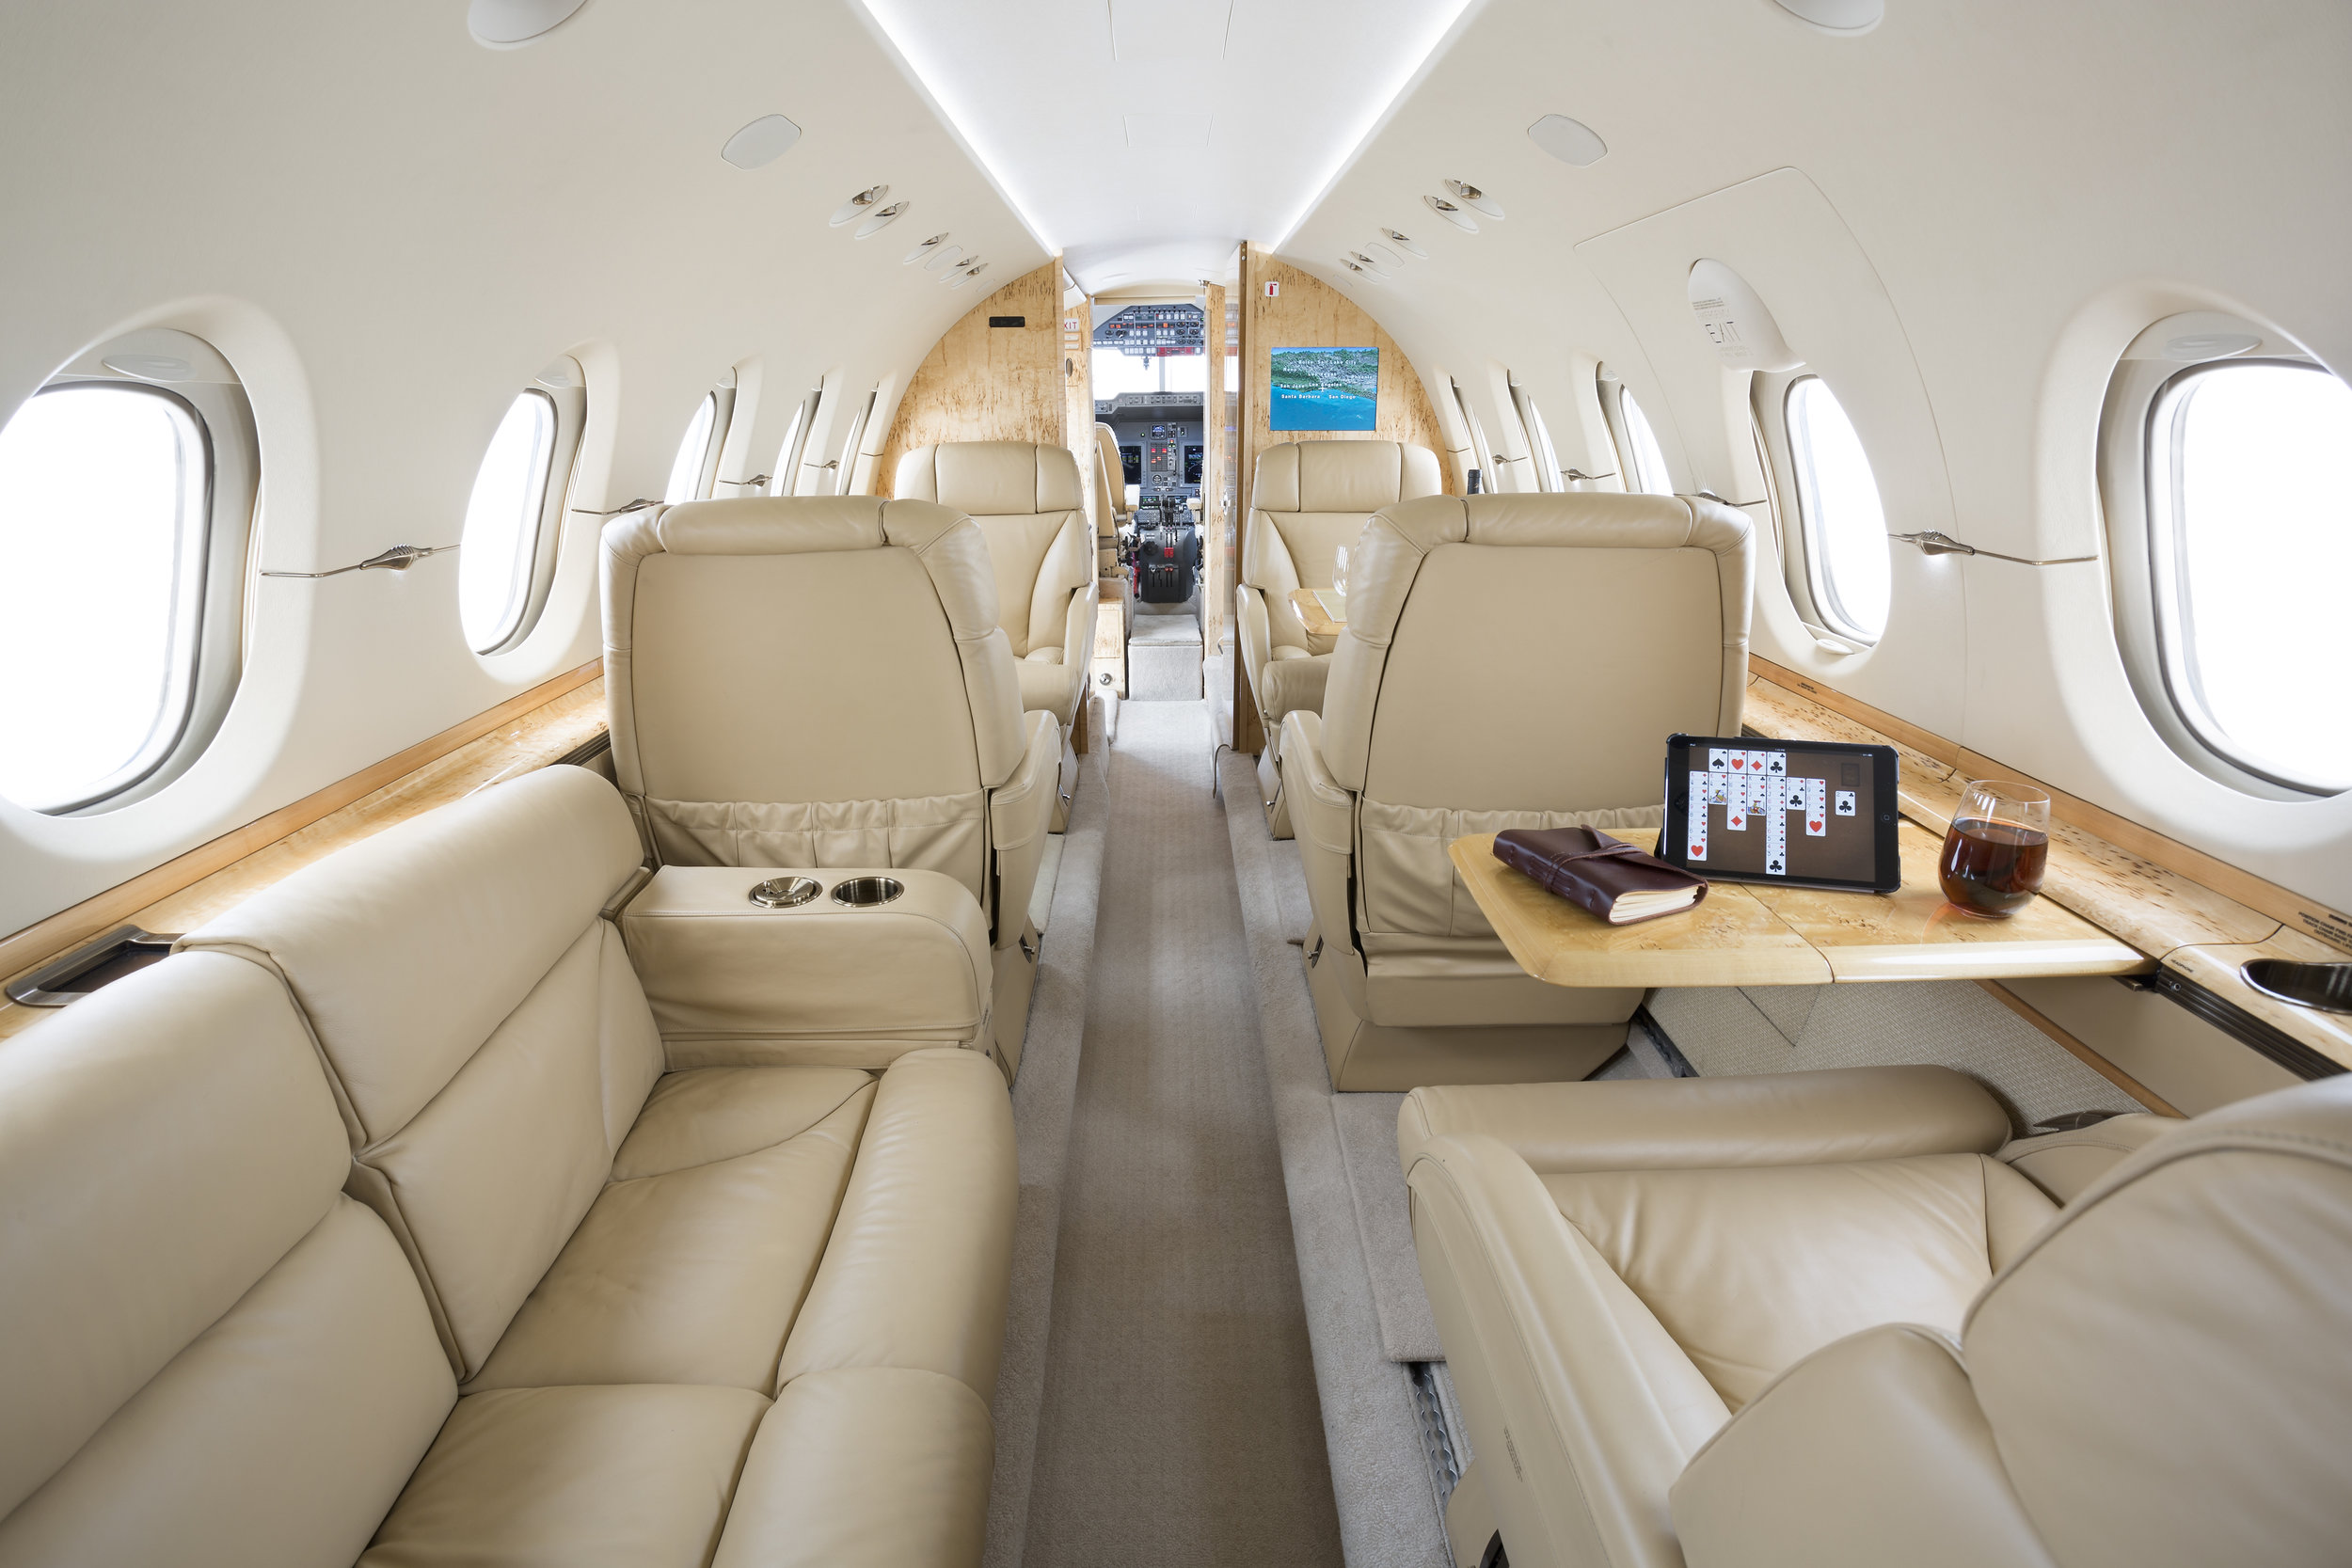 Hawker-900XP_Mid Jet_Int-2_Legacy_Aviation_Private_Jet_NetJets_Jet_Charter_TEB_VNY_MIA_PBI_FRG_SFO_FLL_FXE_BED.jpg